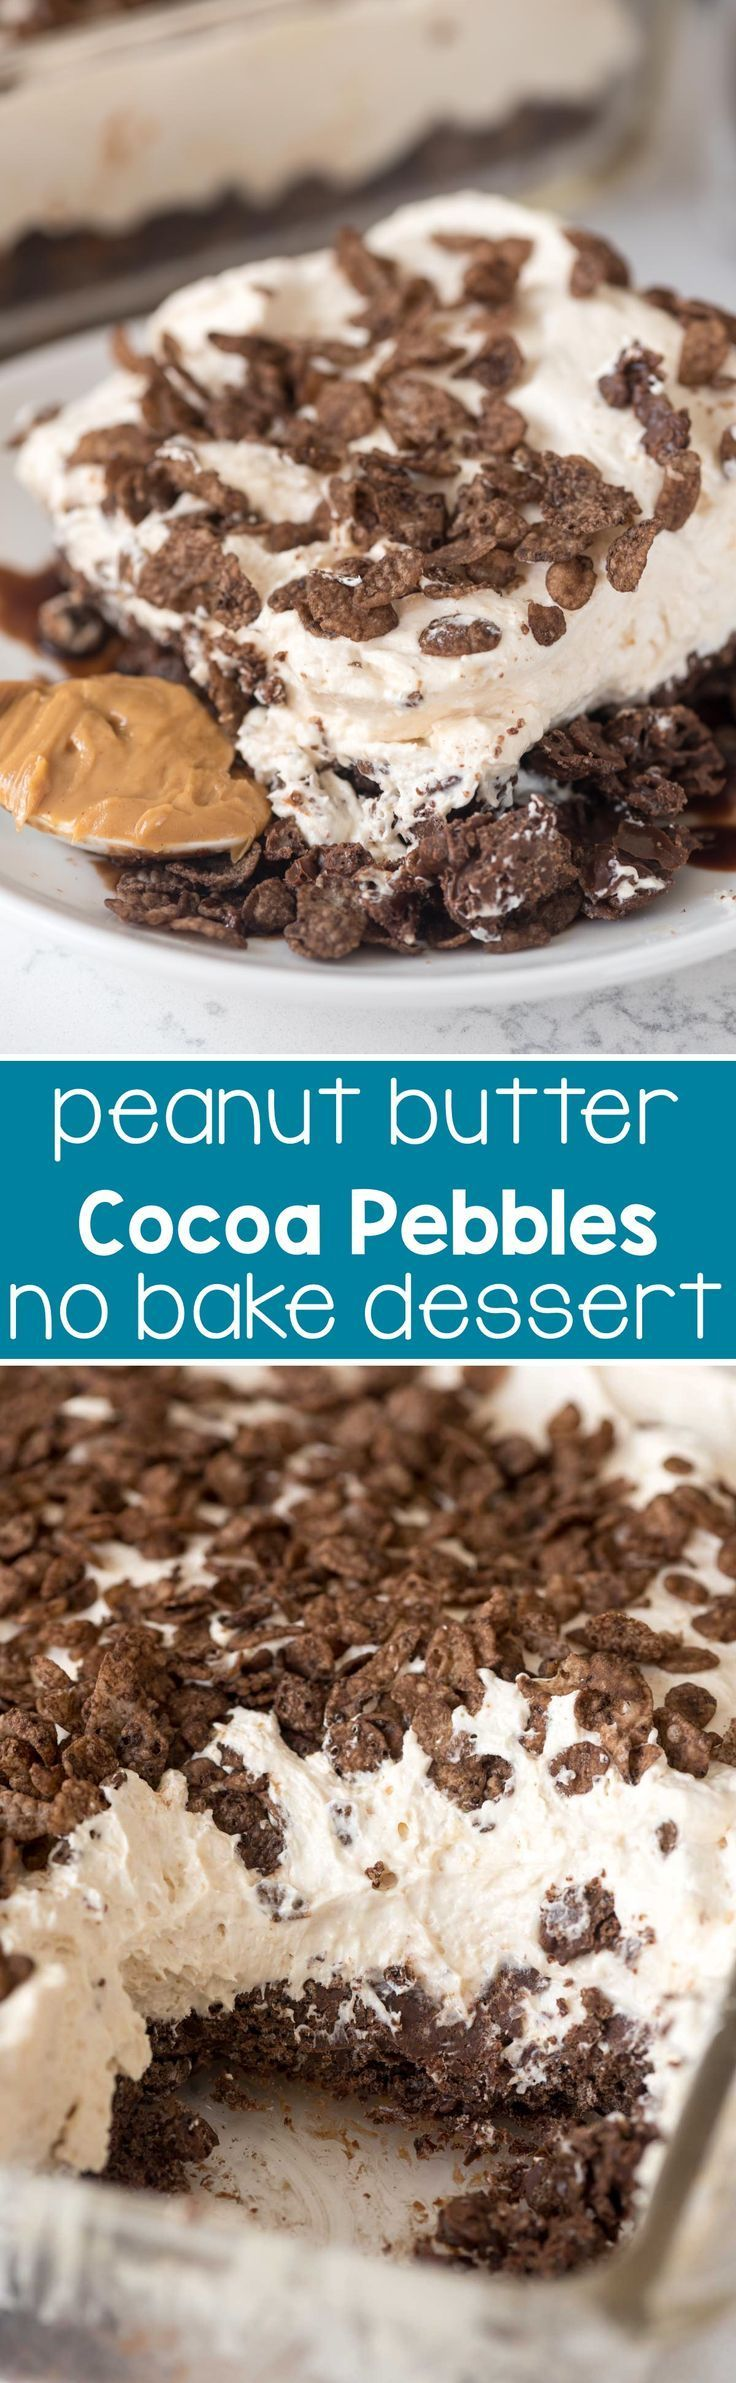 Cocoa Pebble No Bake Dessert - an EASY peanut butter cheesecake on top ...